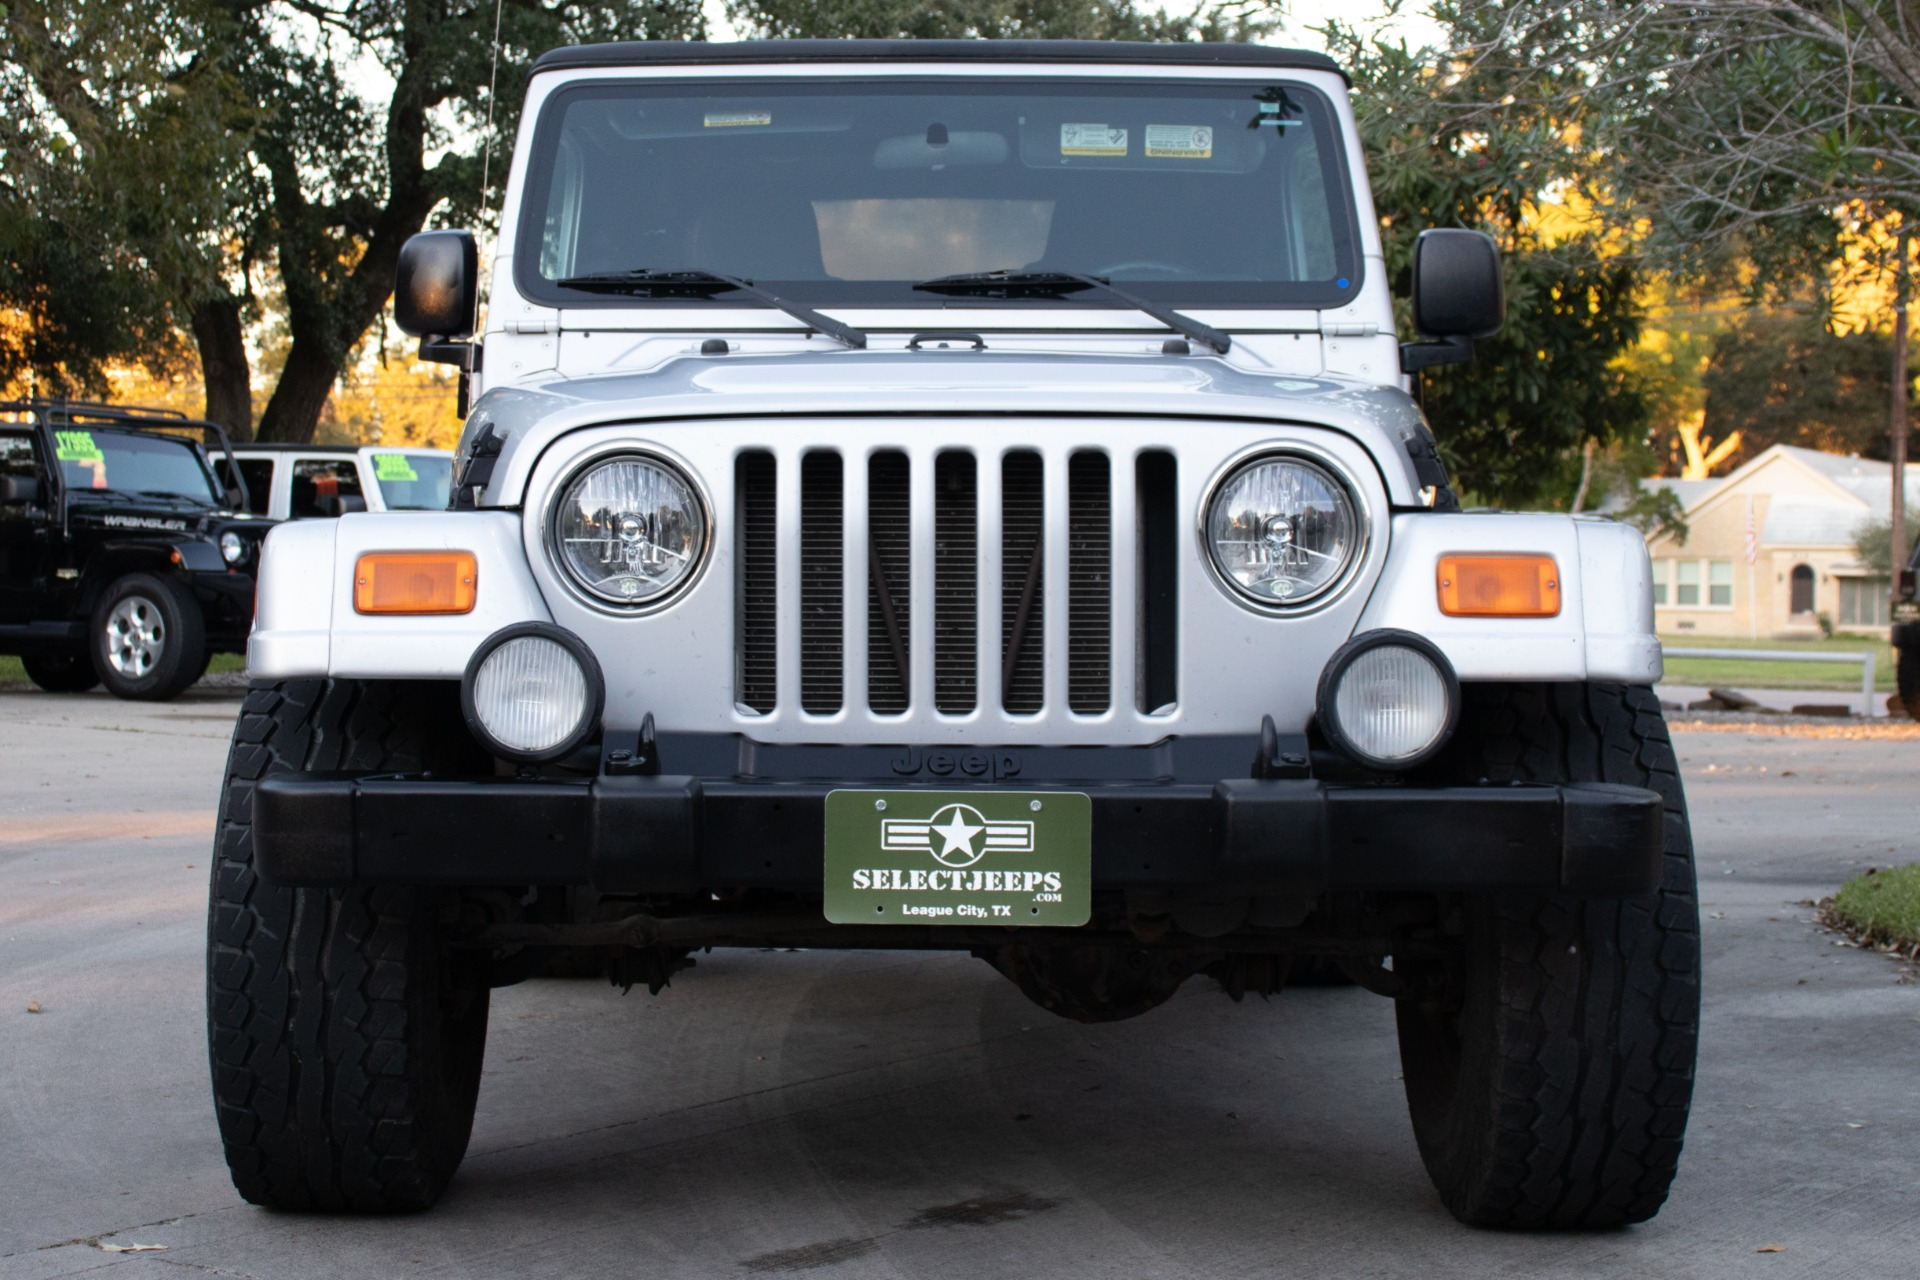 Used-2003-Jeep-Wrangler-X-Freedom-Edition